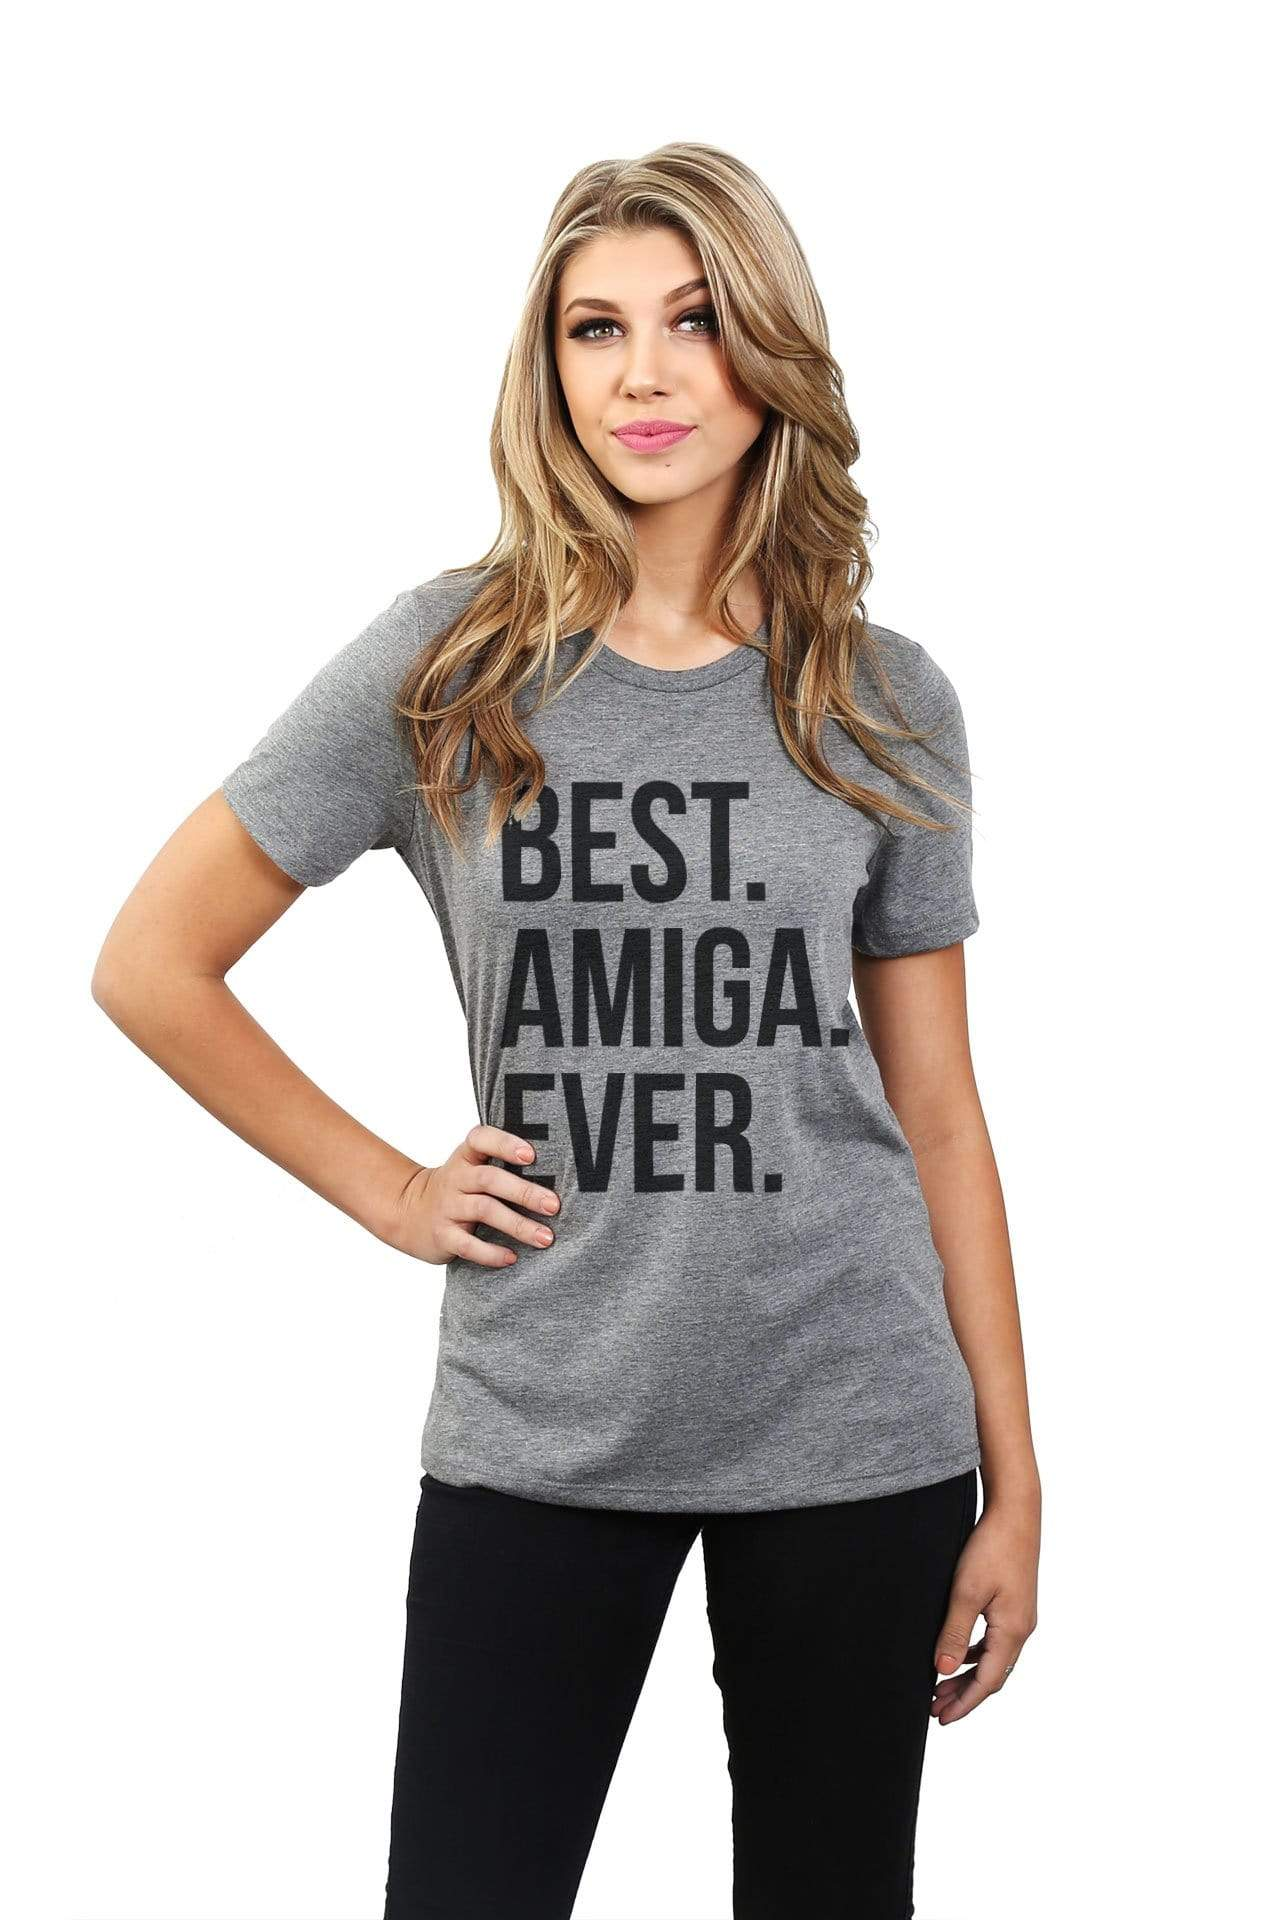 Best Amiga Ever - Thread Tank | Stories You Can Wear | T-Shirts, Tank Tops and Sweatshirts